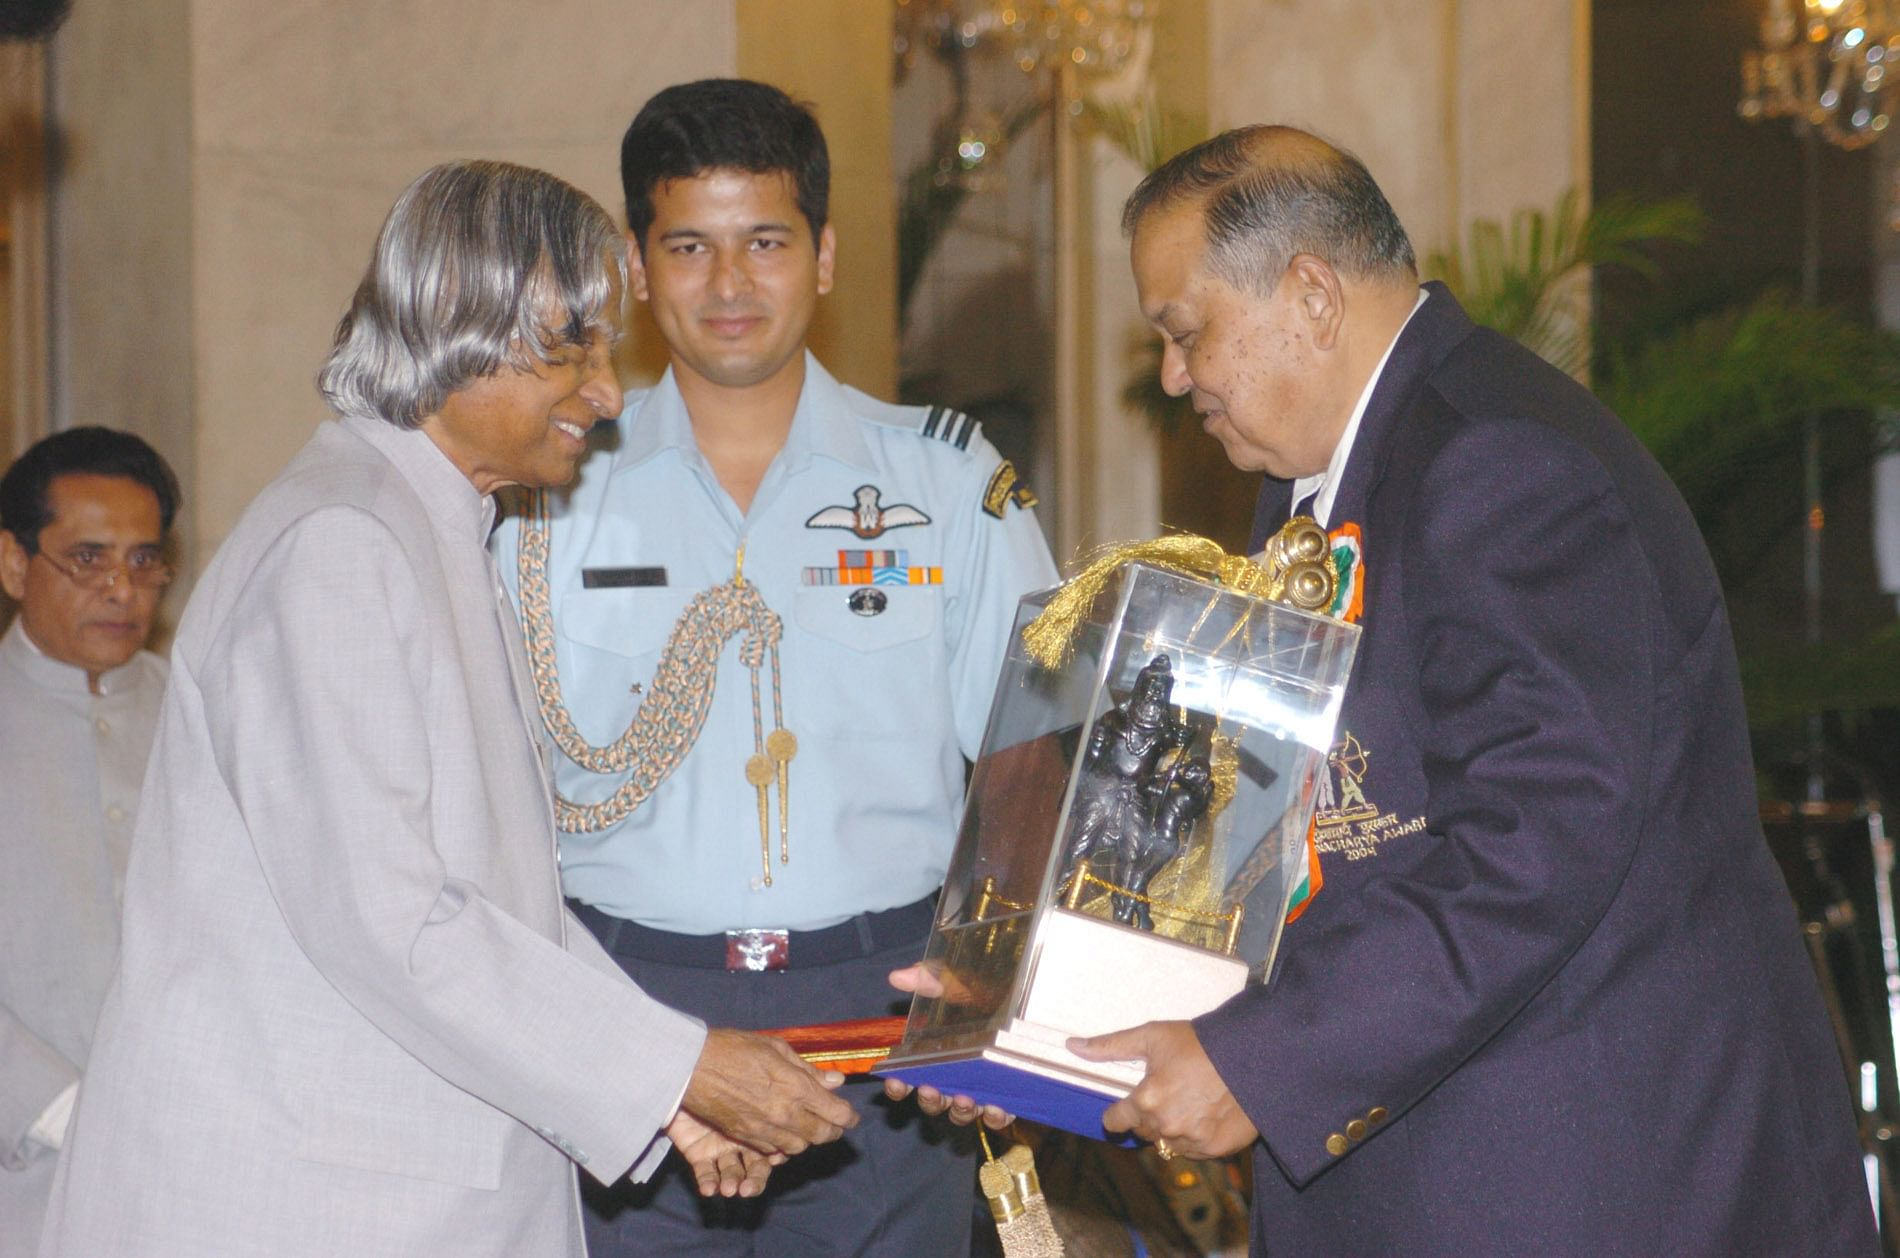 The President Dr. A.P.J. Abdul Kalam presenting the Dronacharya Award for the year 2004 to Shri Arvind Savur for Billiards & Snooker. (Credit: photodivision.gov.in)